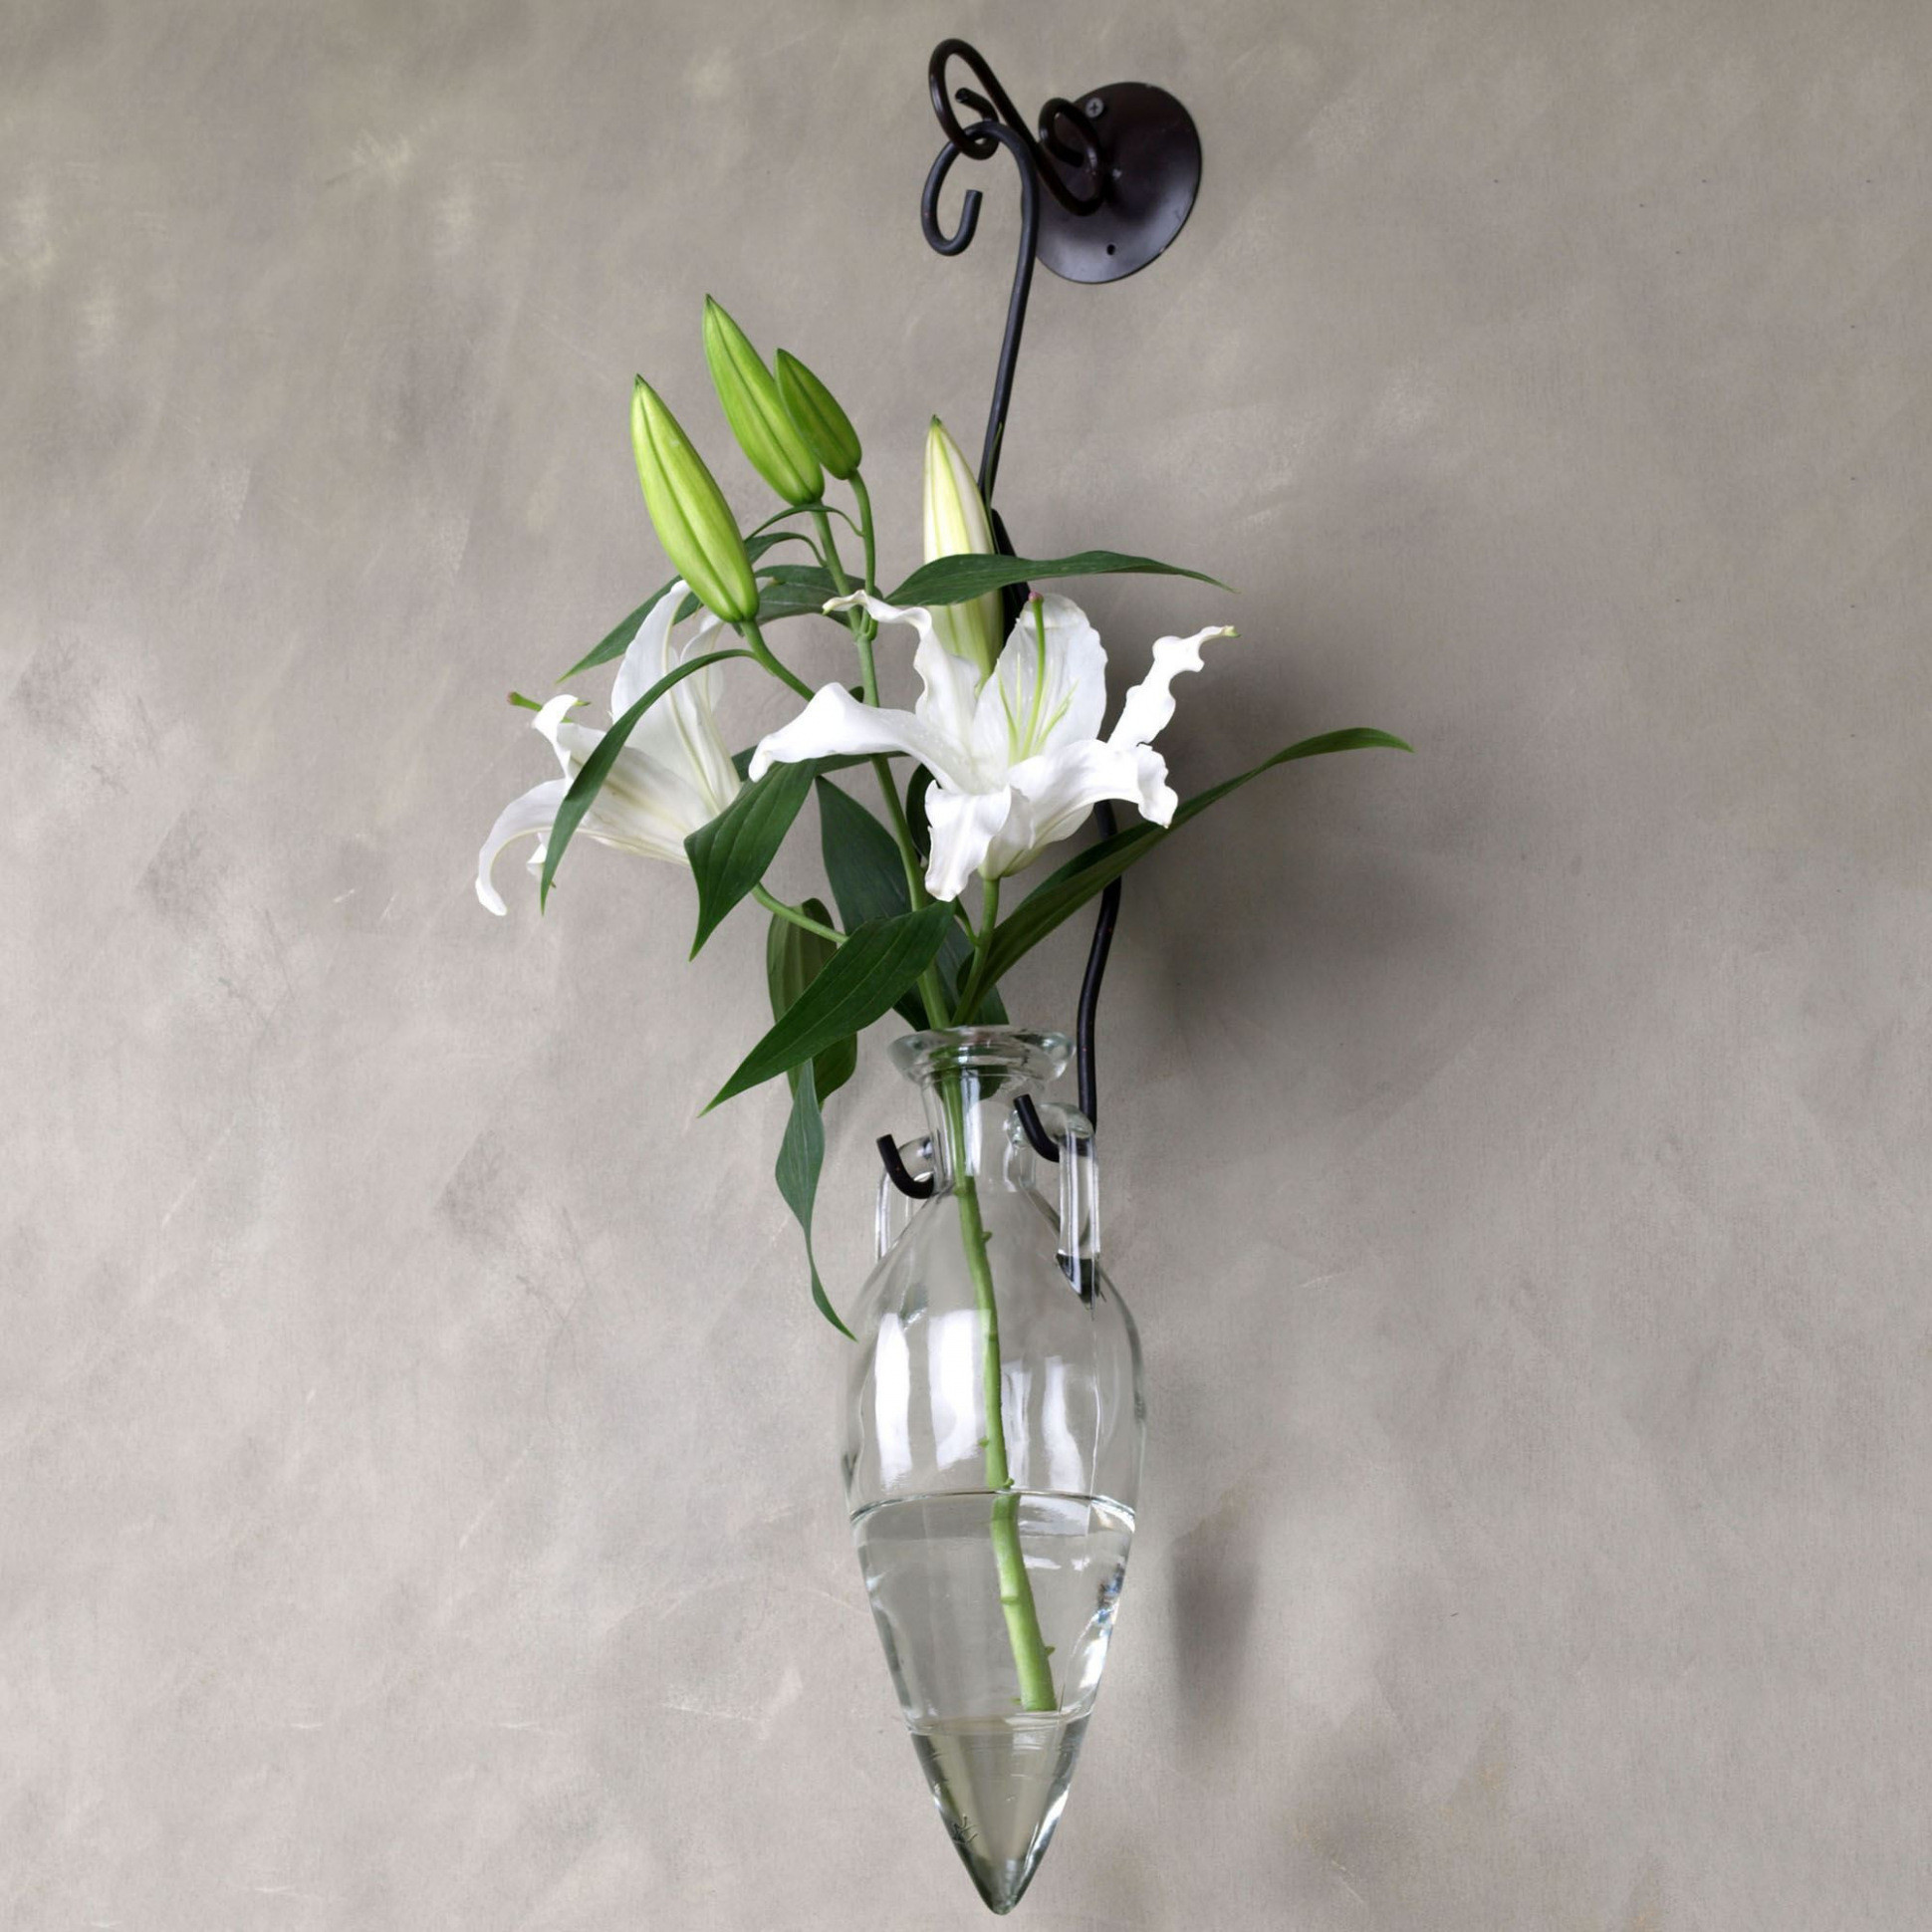 black bud vase of 10 fresh black marble vase bogekompresorturkiye com in h vases wall hanging flower vase newspaper i 0d scheme wall scheme design outdoor wall